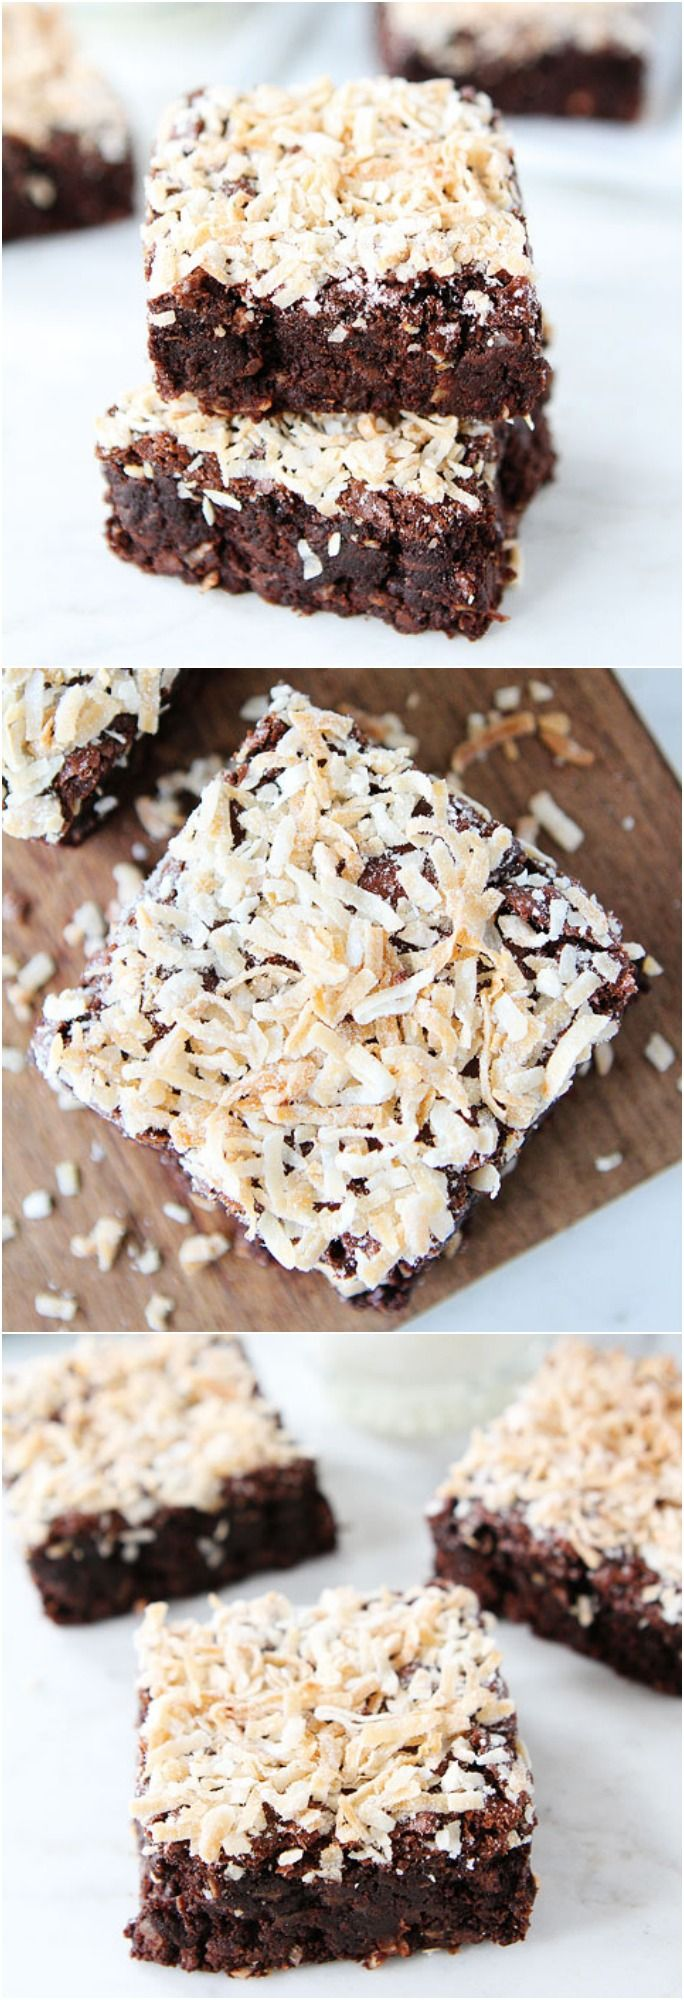 Coconut Brownies Recipe on twopeasandtheirpod.com. Fudgy brownies made with coconut oil and topped with coconut! #brownies